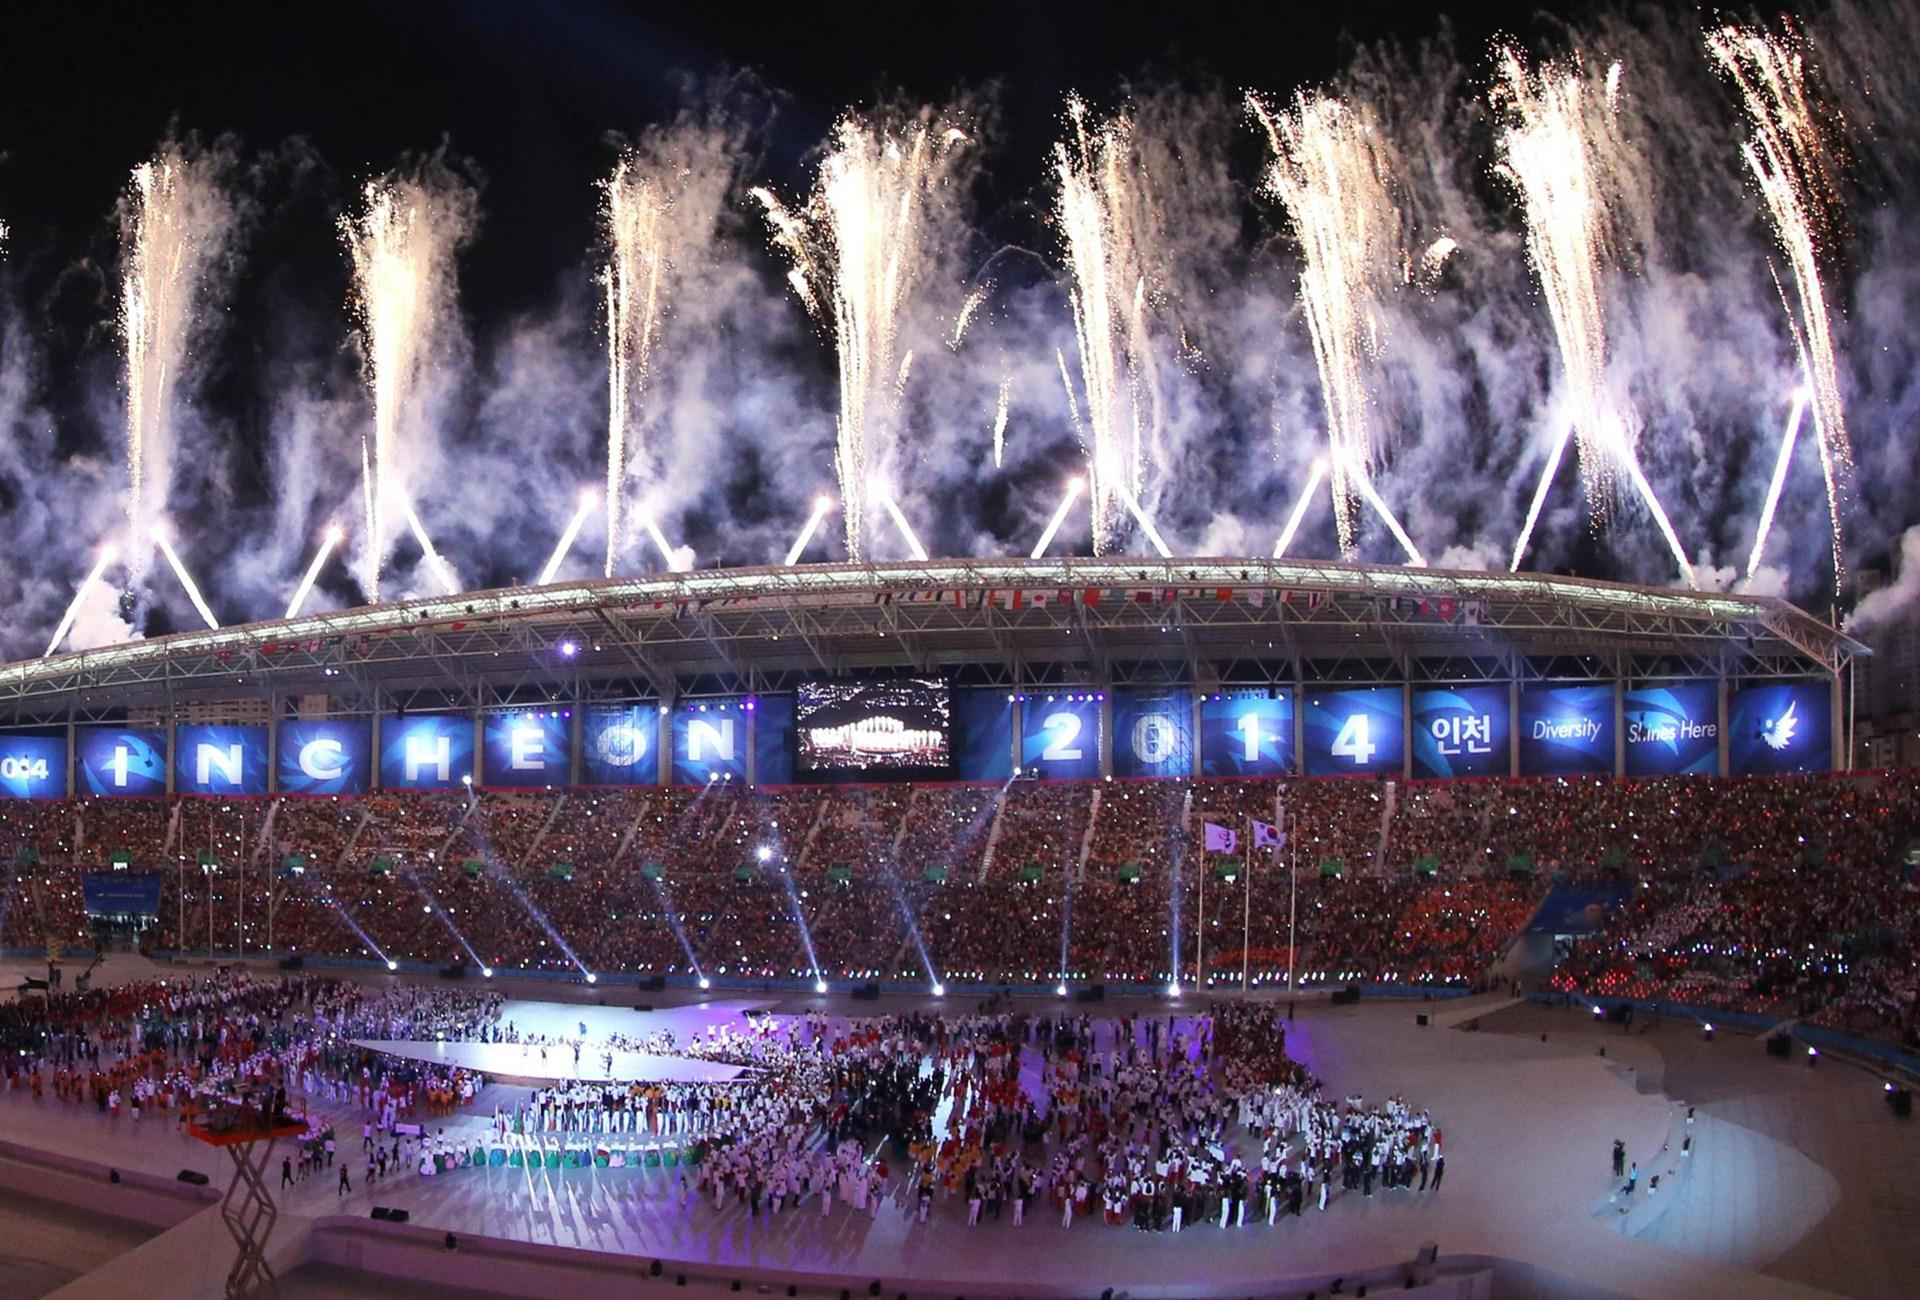 Hollywood Beautiful Girl Hd Wallpaper Hd Asian Games Opening Ceremony Wallpaper Download Free